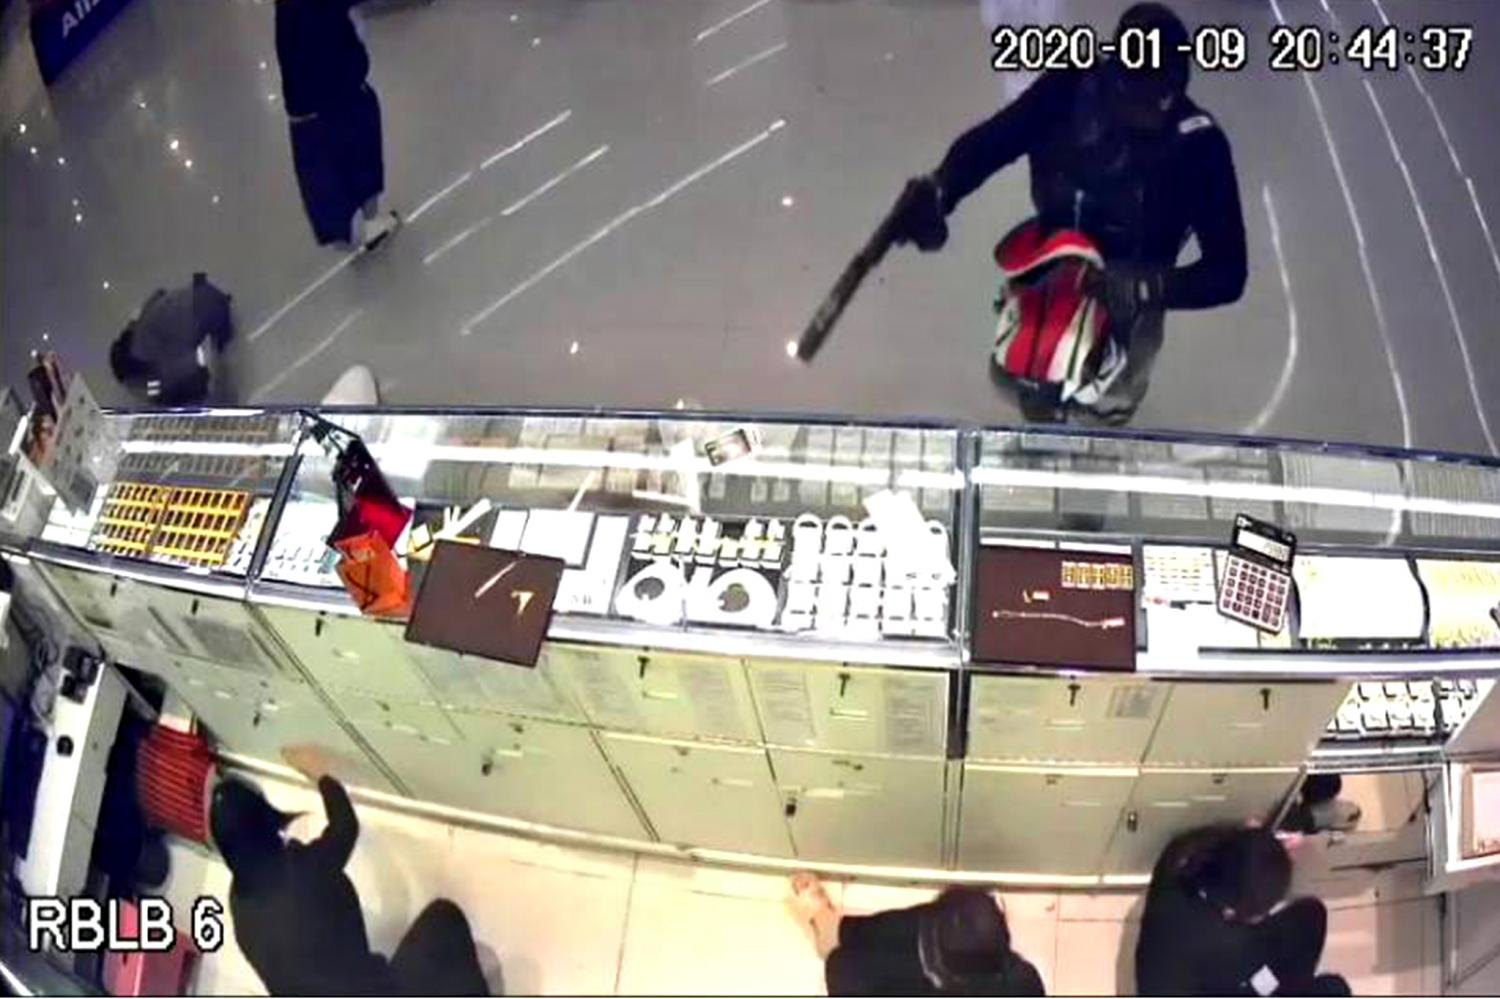 An image of a robbery suspect, who killed three people and injured four others, is captured by a security camera as he raided Aurora gold shop at a Robinson shopping mall in Lop Buri's Muang district late on Thursday night.(Aurora gold shop's CCTV photo)